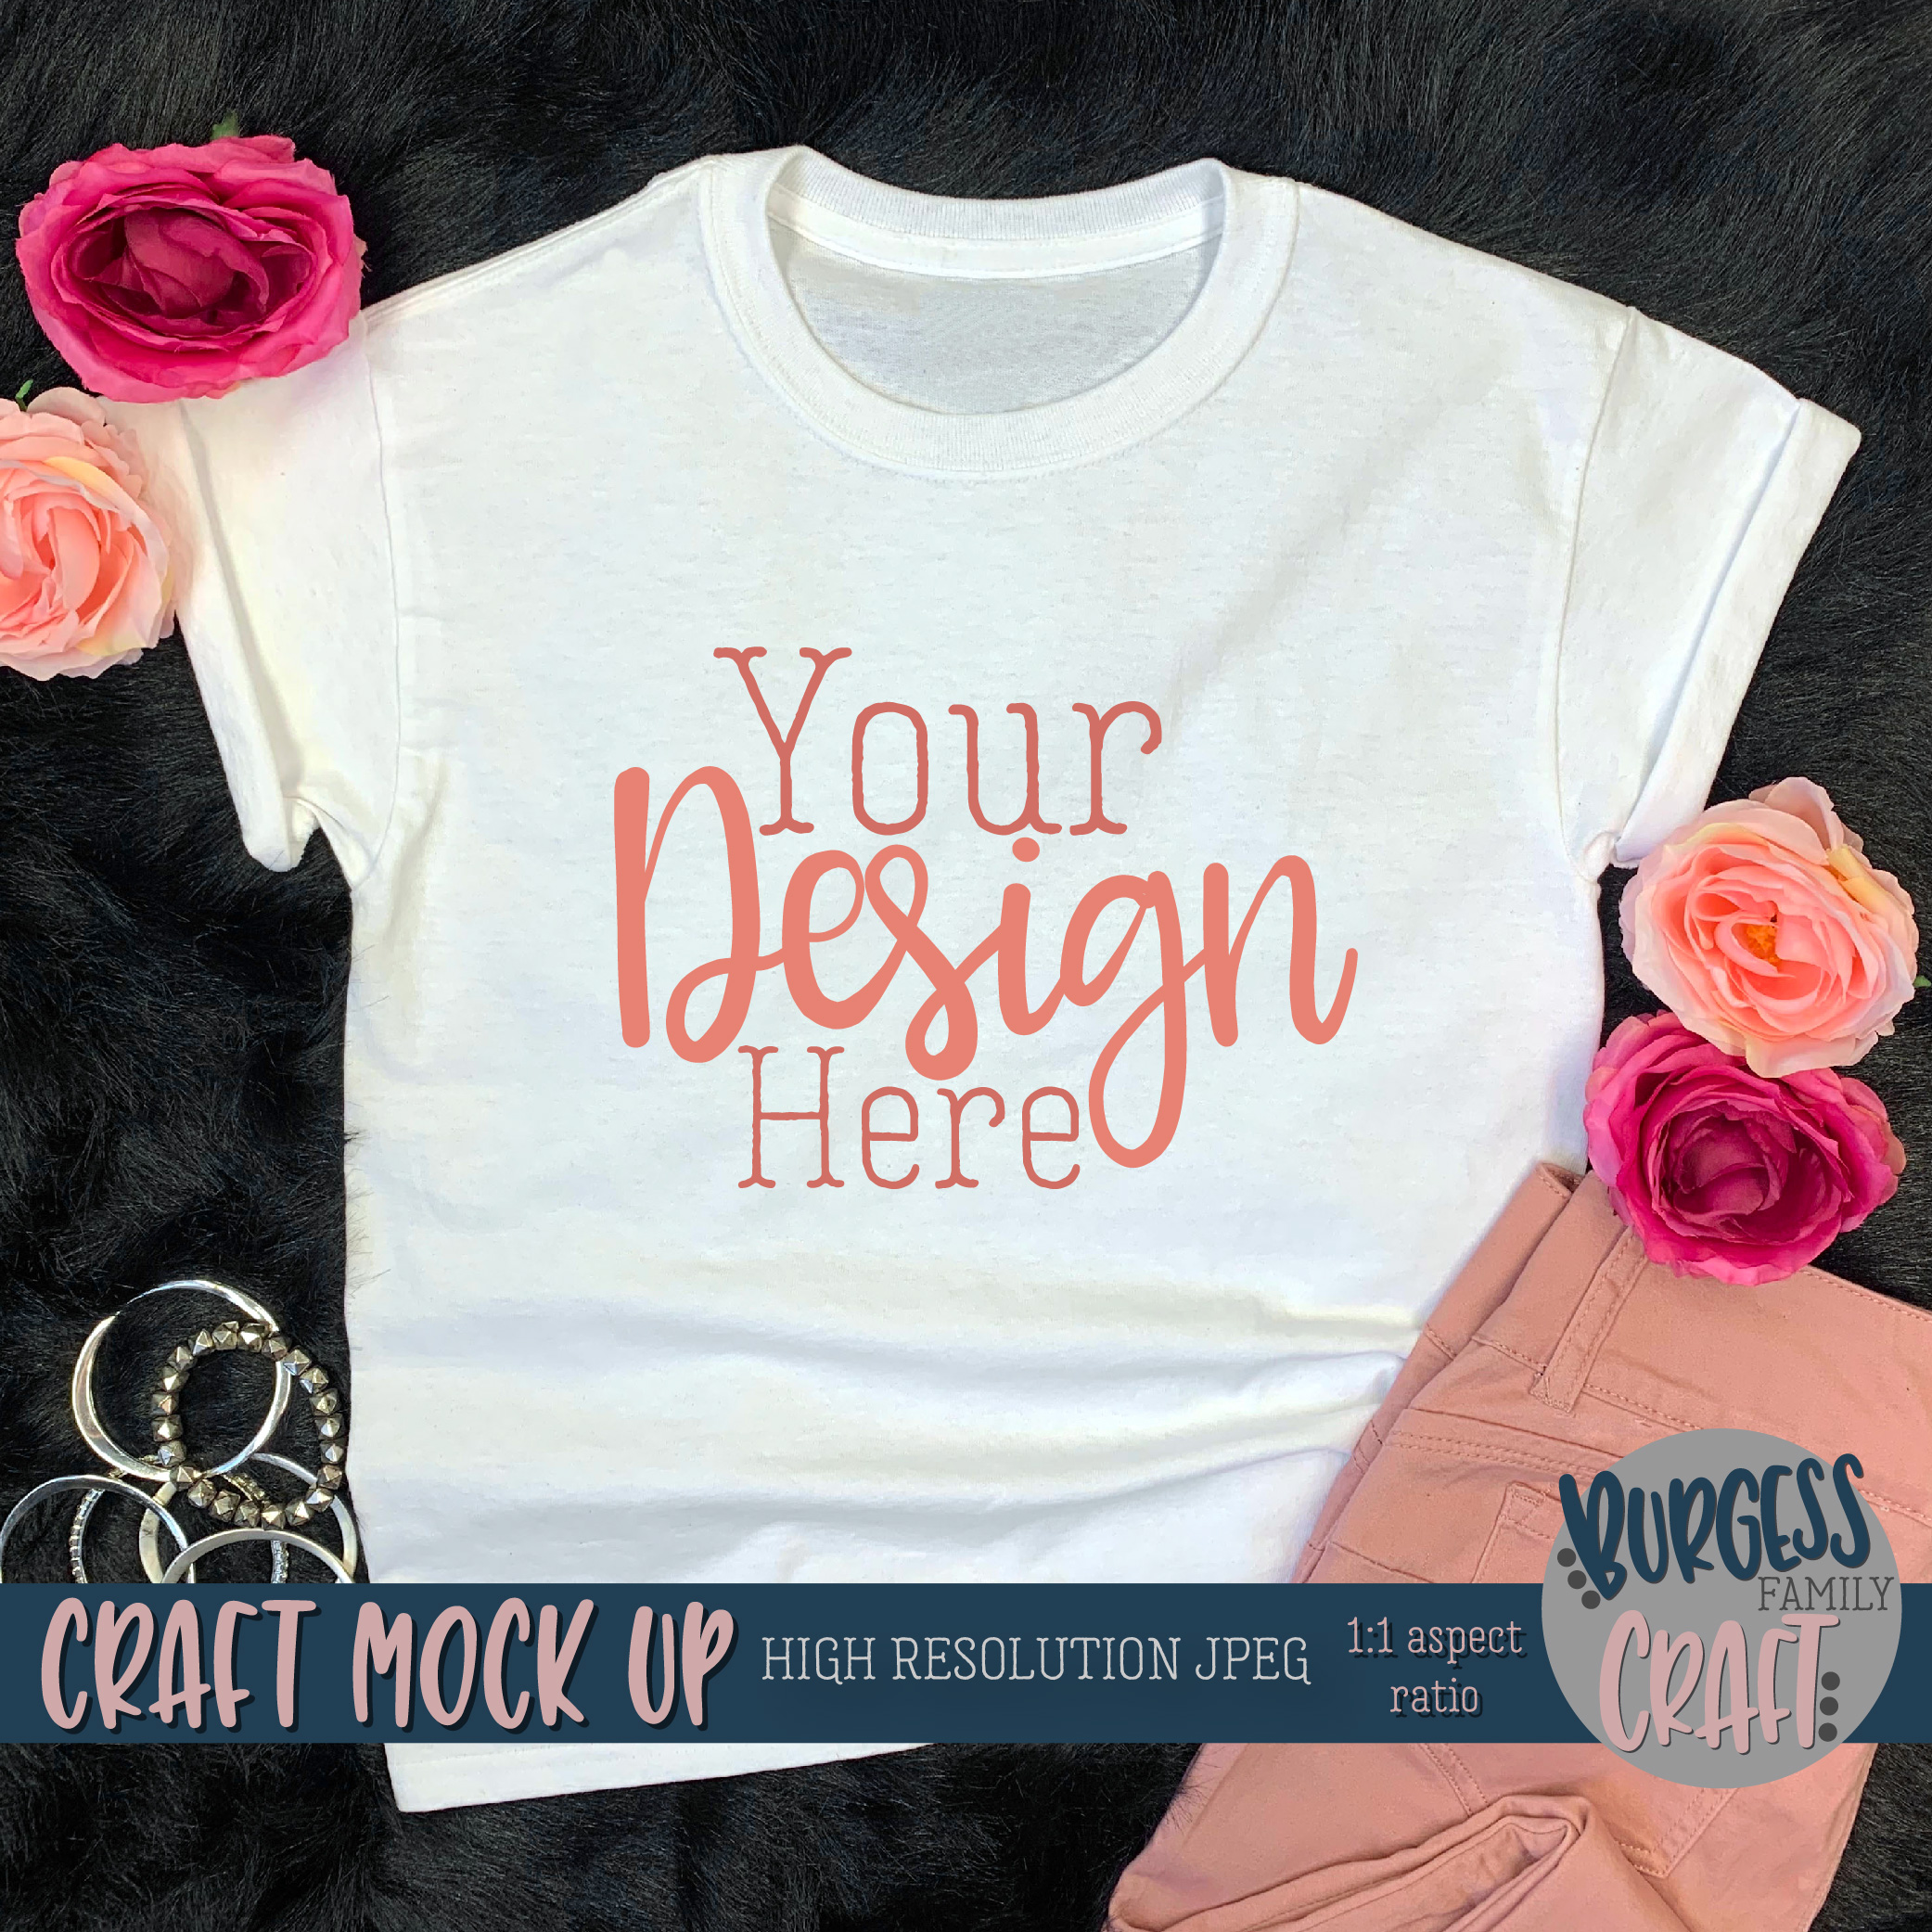 Youth Shirt Pretty in Pink Craft mock up | High Res JPEG example image 2